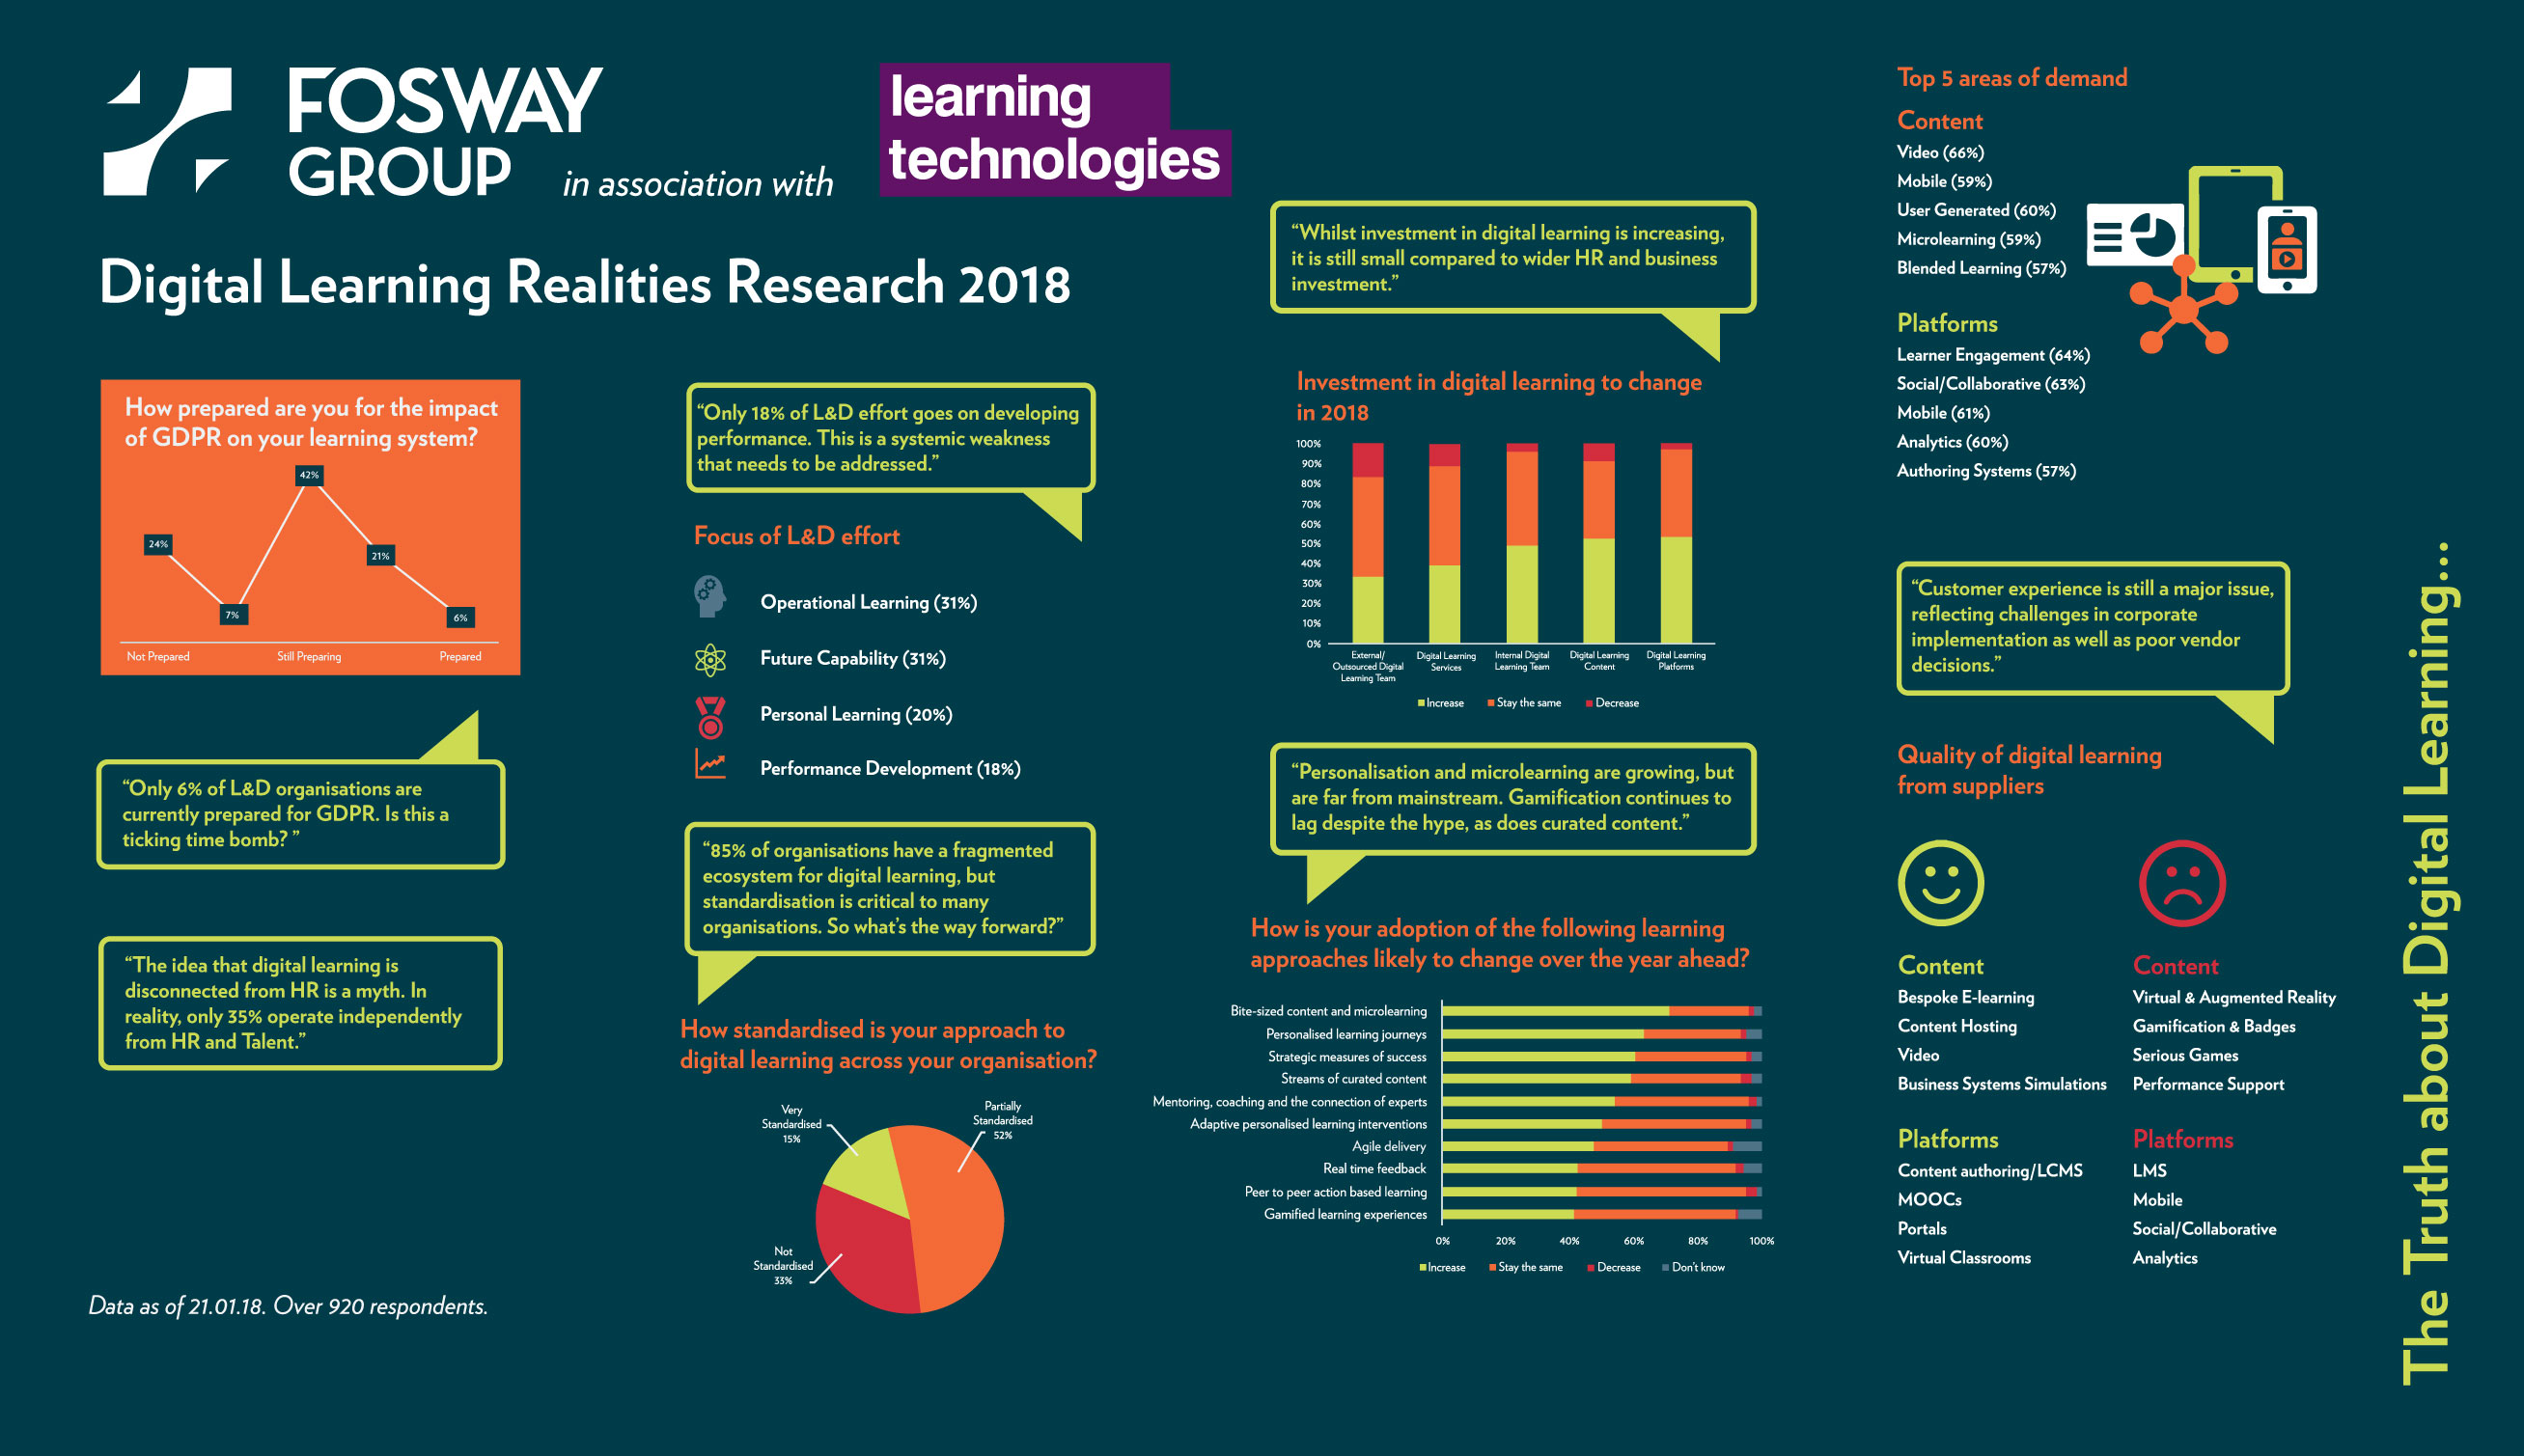 Fosway and Learning Technologies reveal the truth about digital learning in 2018